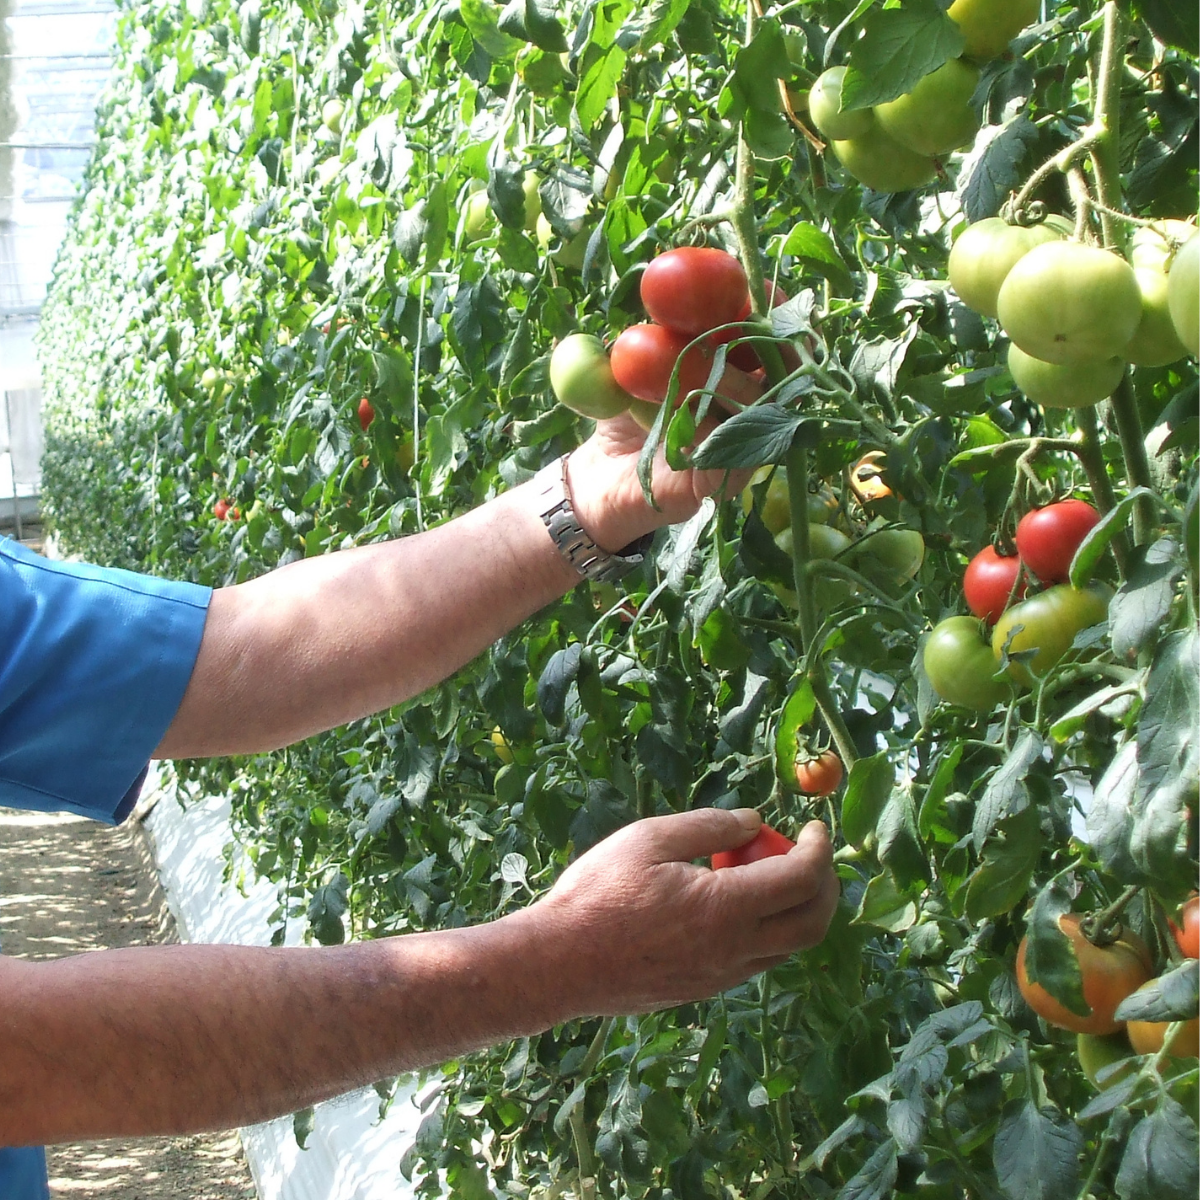 A farmer picking up a tomato